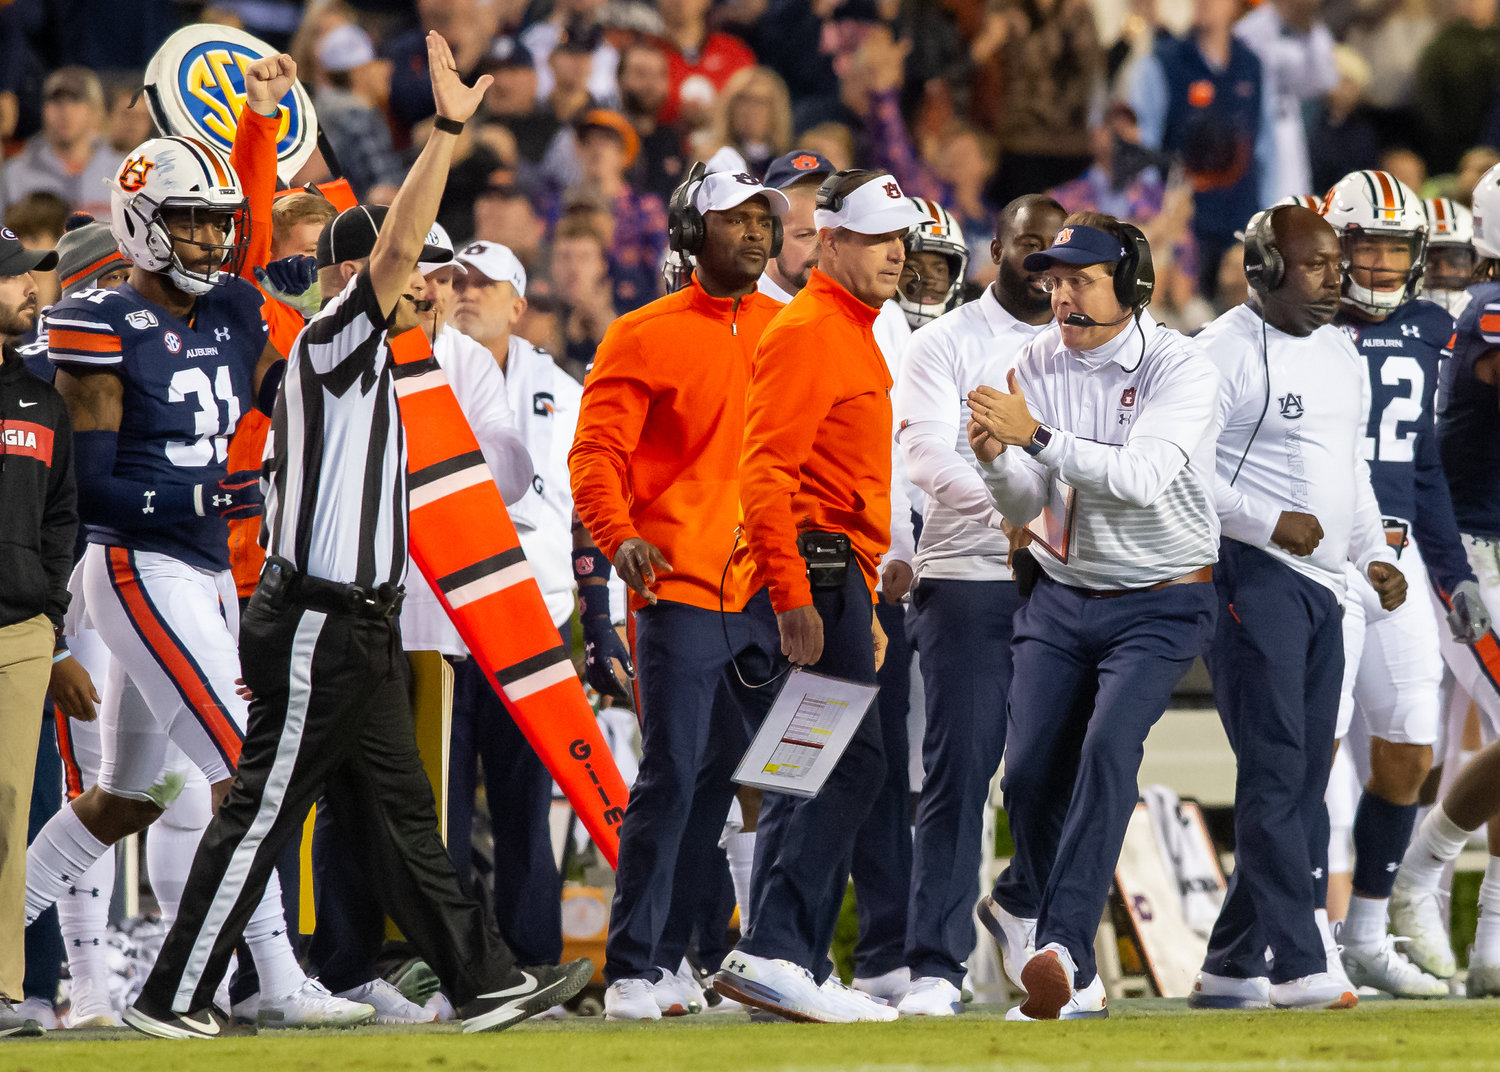 Auburn Tigers head coach Gus Malzahn calls timeout  during the fourth quarter of Saturday's game, at Jordan-Hare Stadium in Auburn,, AL. Daily Mountain Eagle -  Jeff Johnsey